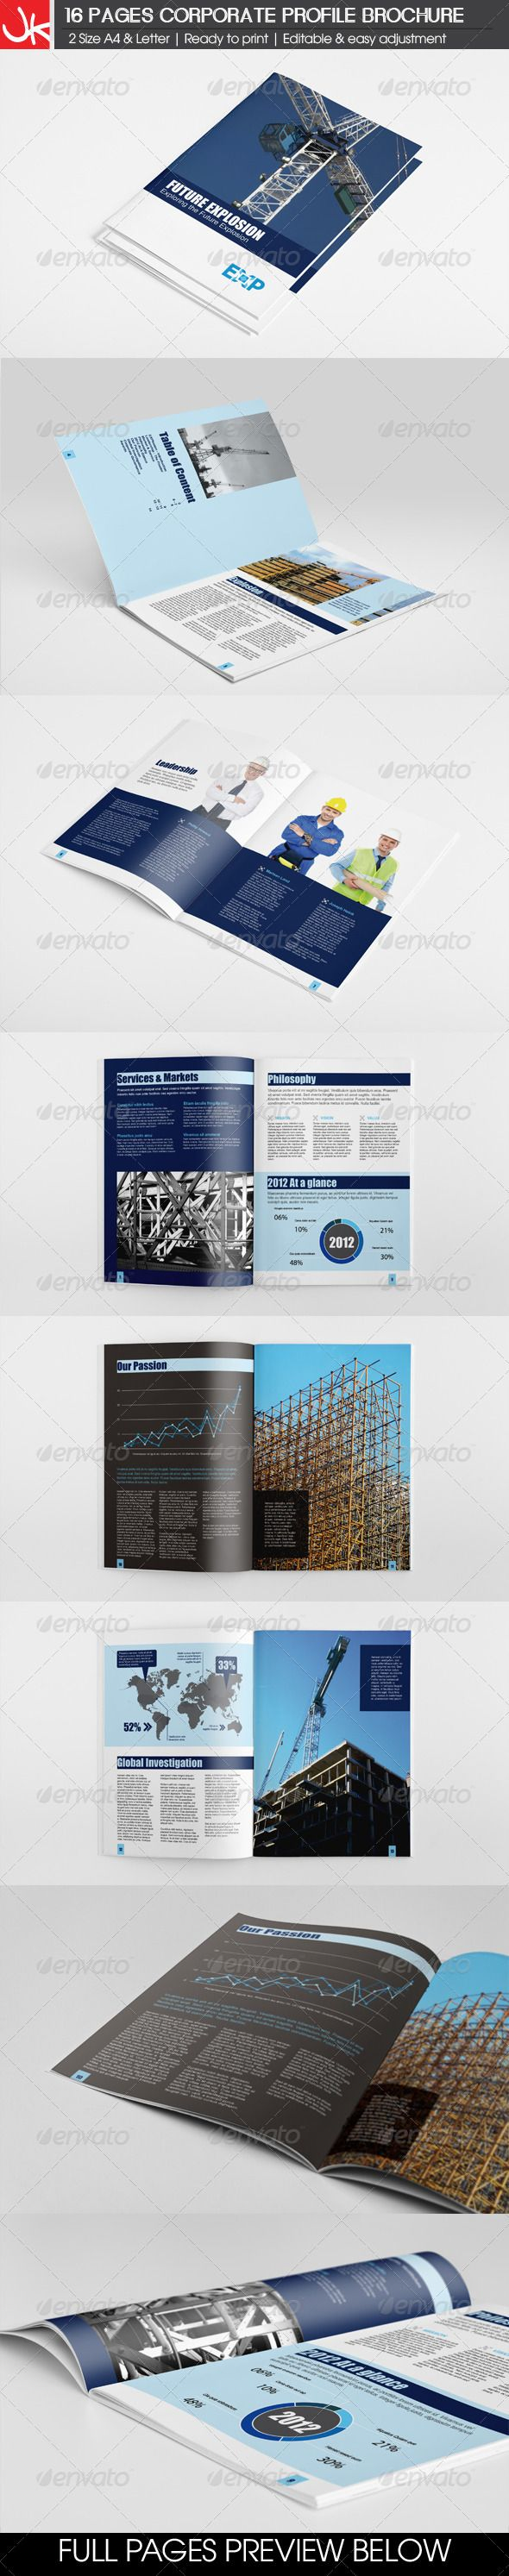 16 Pages Energy Construction Corporate Brochure  Template • Only available here ➝ http://graphicriver.net/item/16-pages-energy-construction-corporate-brochure/4406608?ref=pxcr